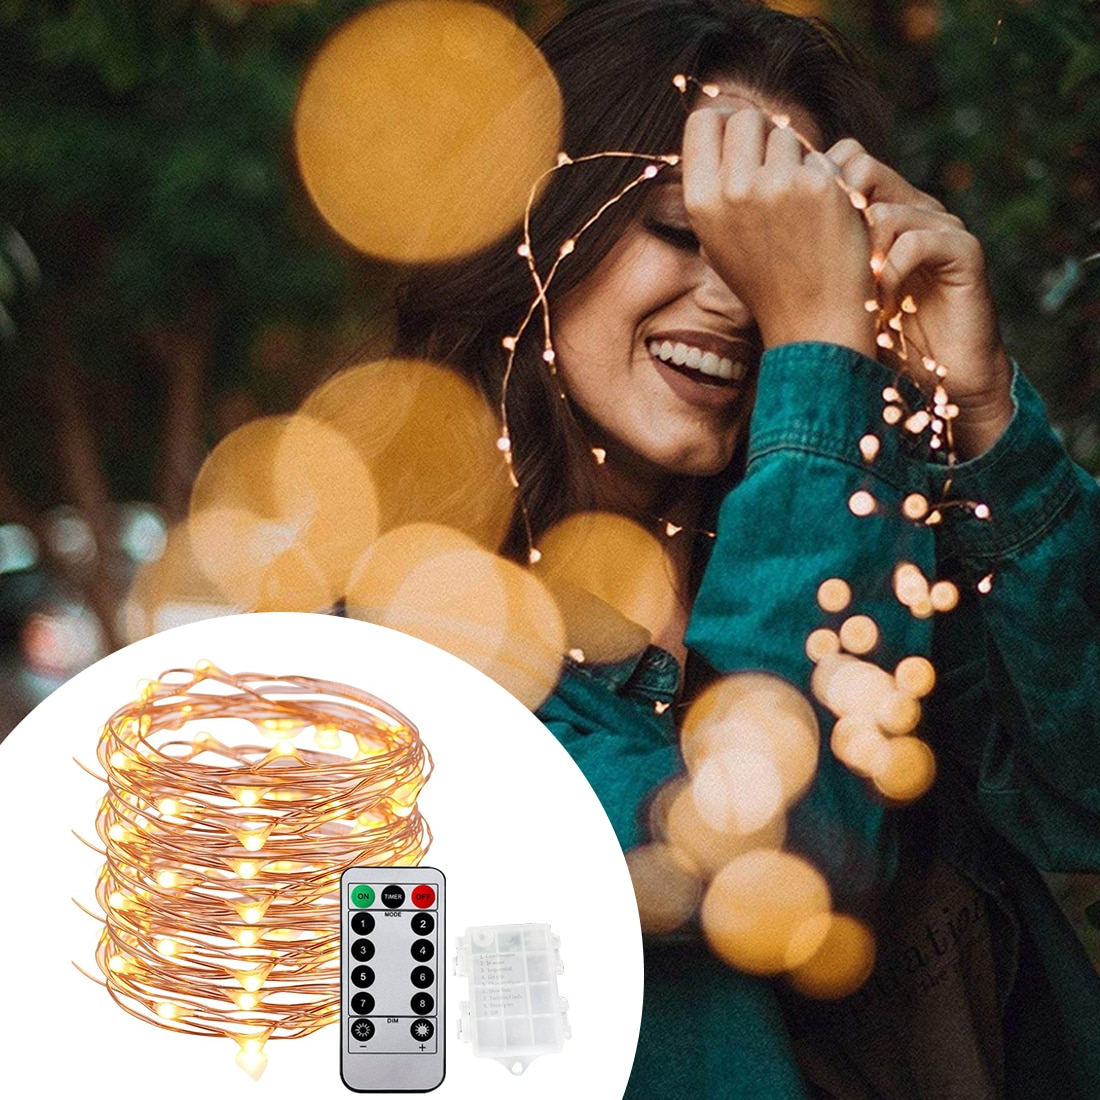 10m Waterproof Light Copper Wire LED String Lights Outdoor Garden Decoration Christmas Wedding New Year Decorate Battery Powered